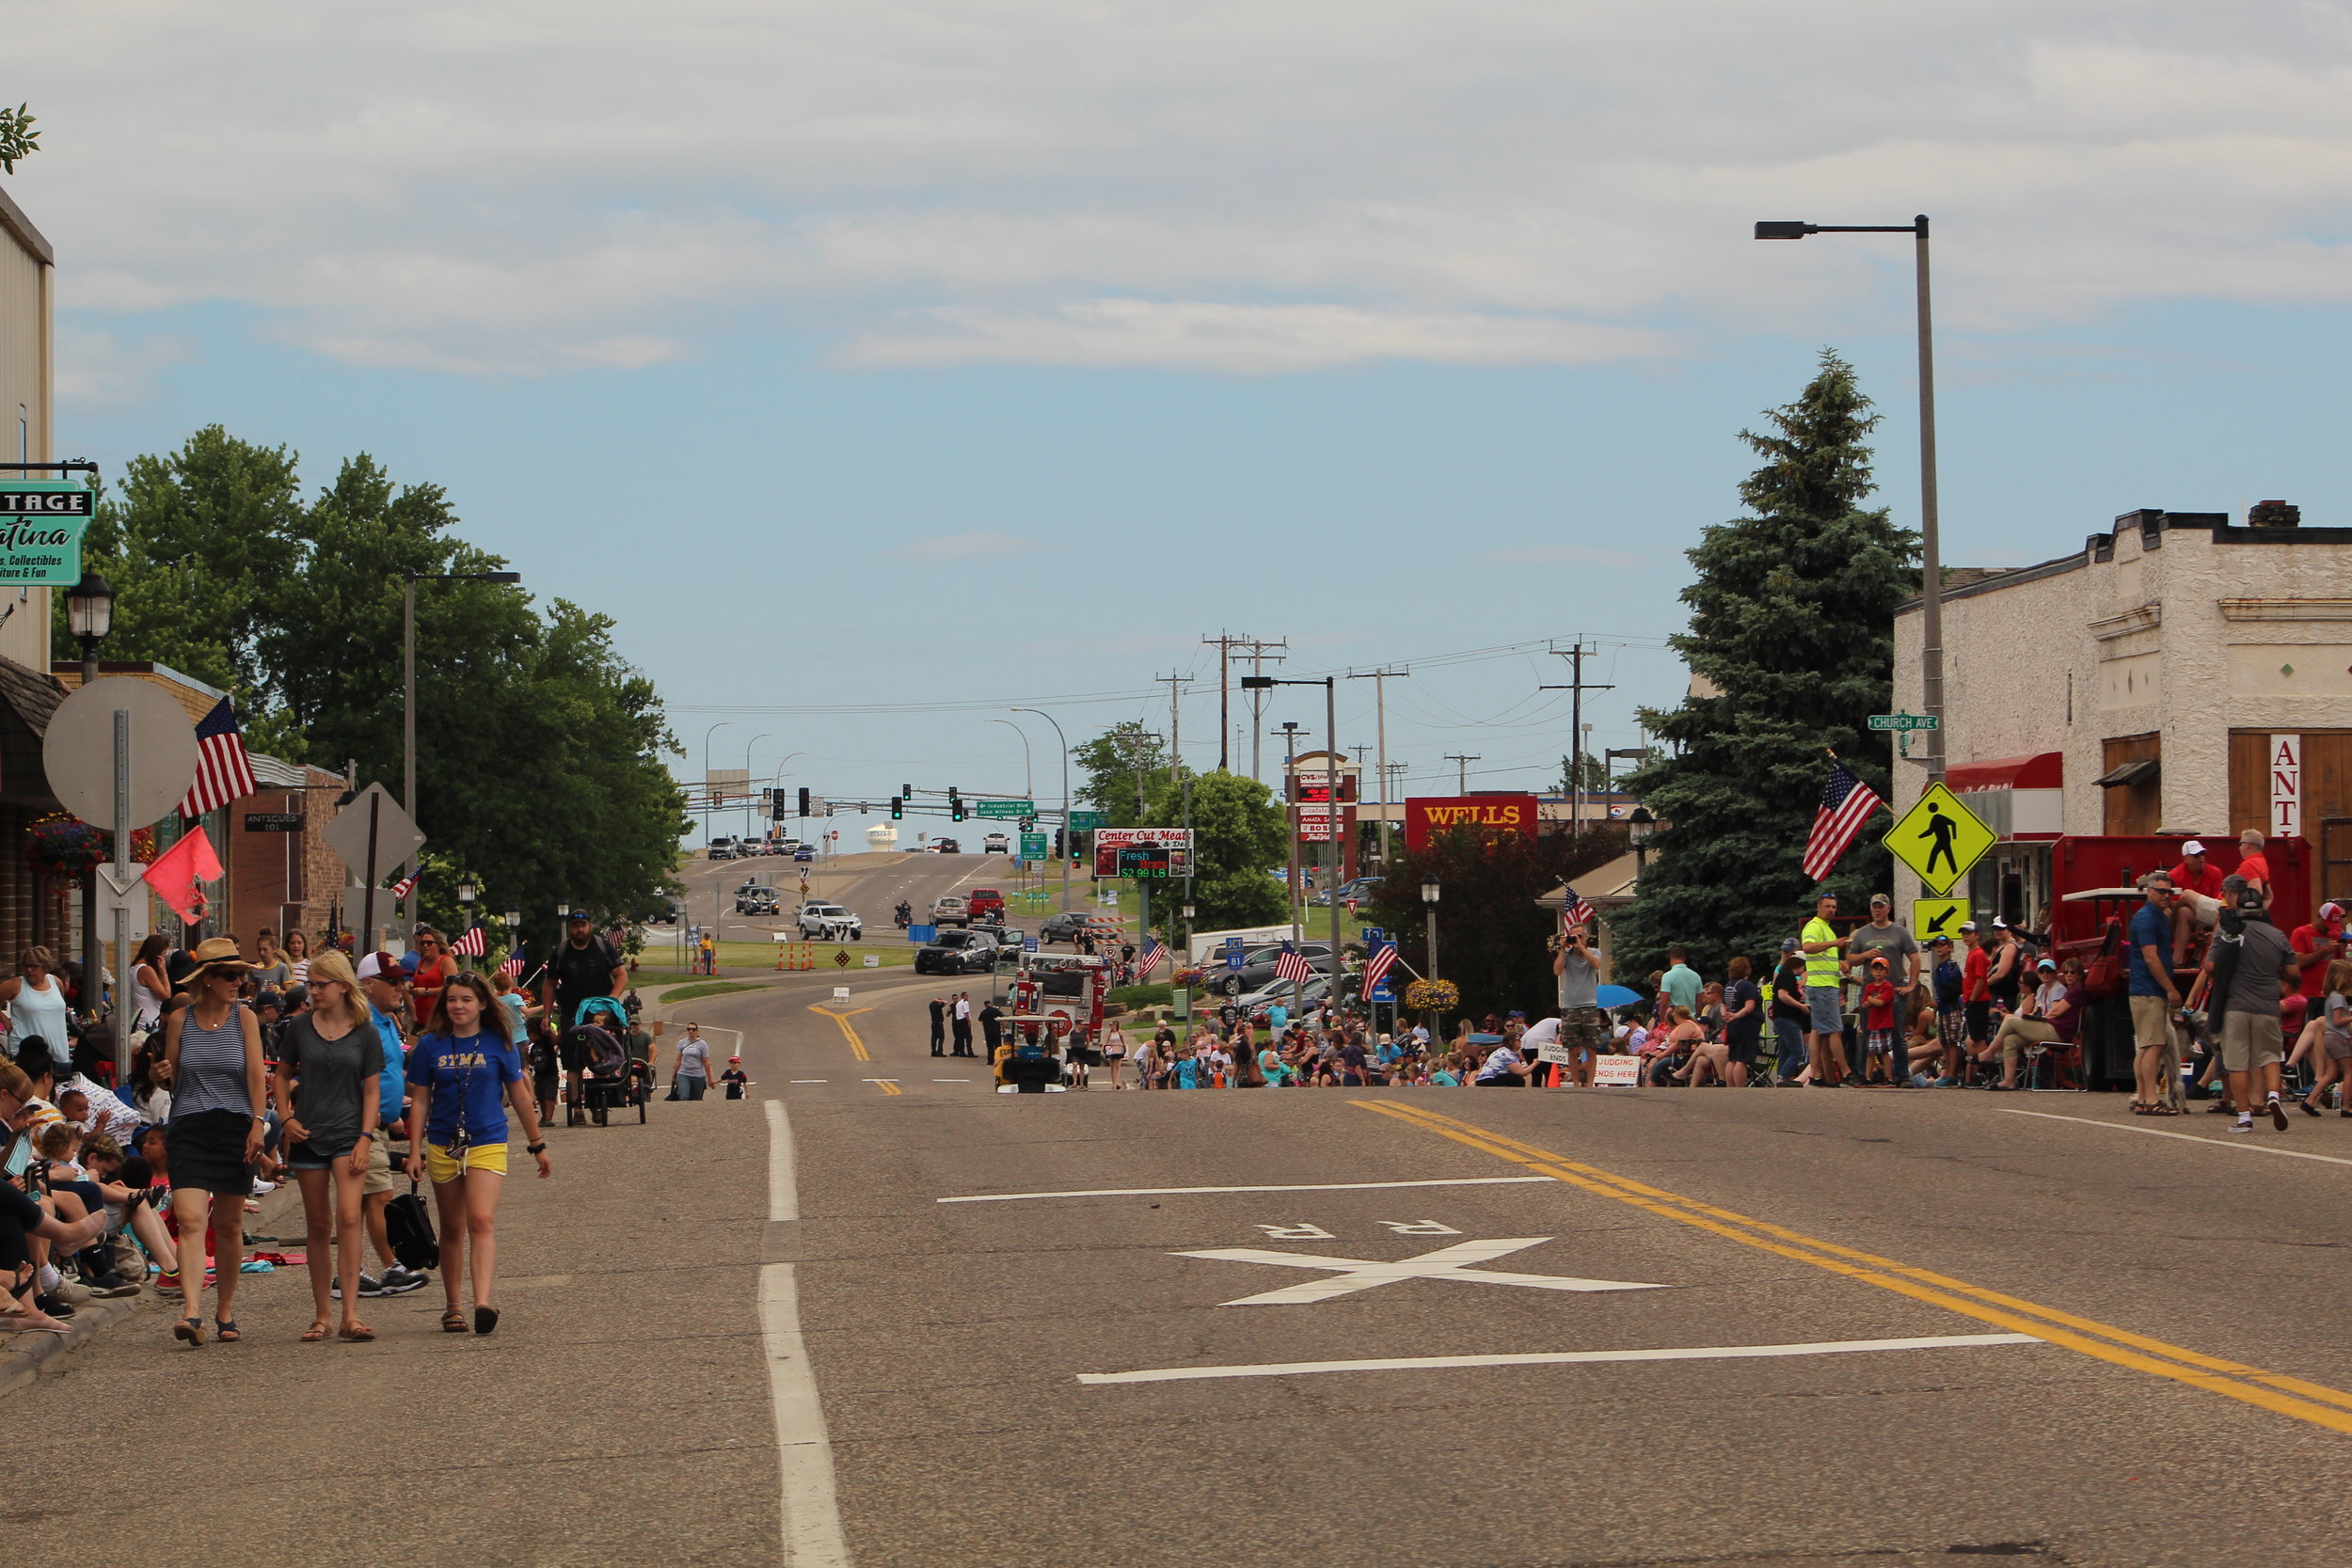 the downtown area consists of long-standing restaurants, businesses, and the Rogers senior center. It is known for its historic value and central location within the city. The annual parade runs down Main Street through Downtown Rogers. - Downtown Rogers